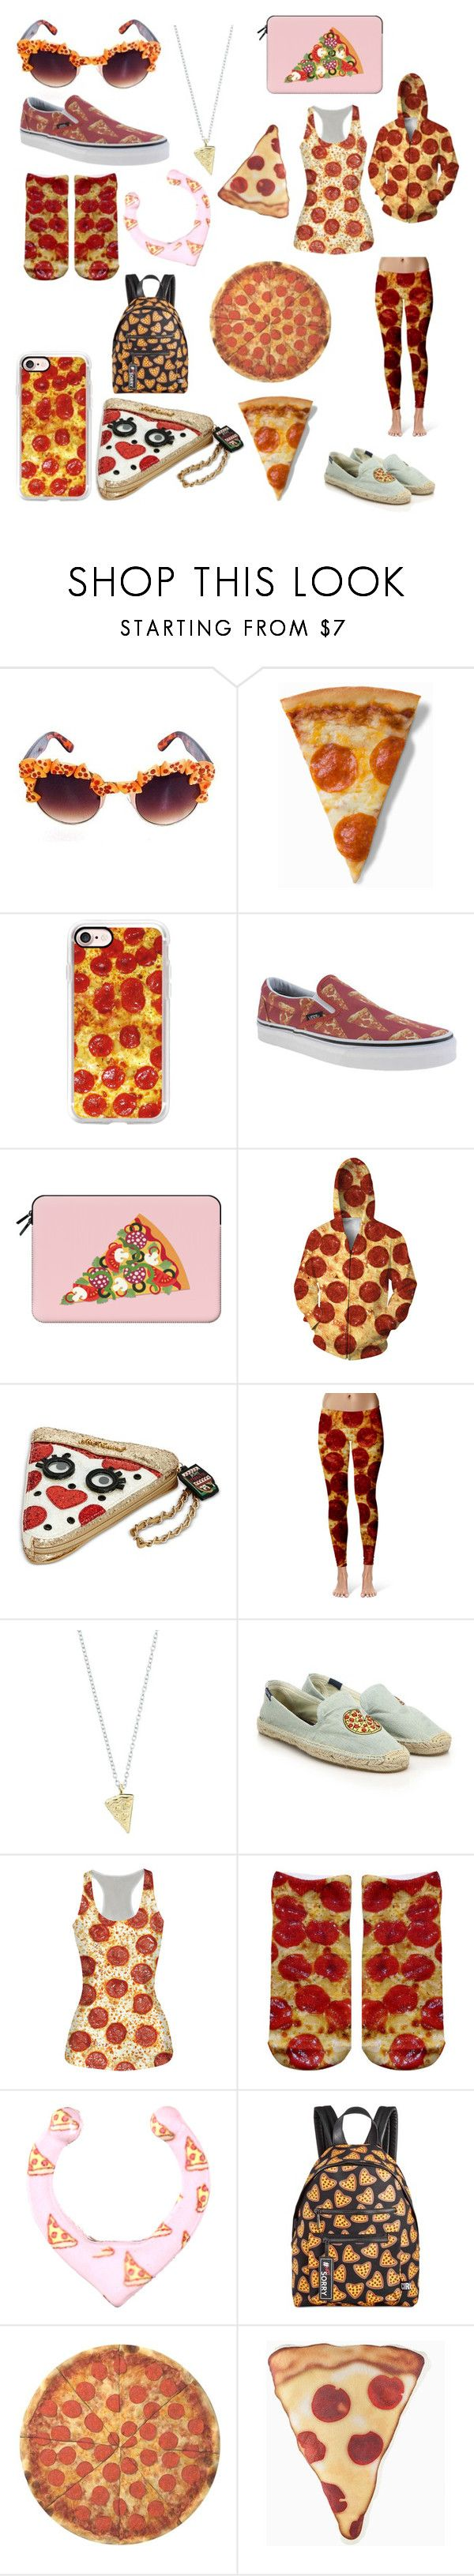 """""""Too much pizza"""" by xxshemurrqueenxx ❤ liked on Polyvore featuring Gasoline Glamour, Casetify, Vans, Betsey Johnson, Rock 'N Rose, Soludos, Circus by Sam Edelman and Round Towel Co."""